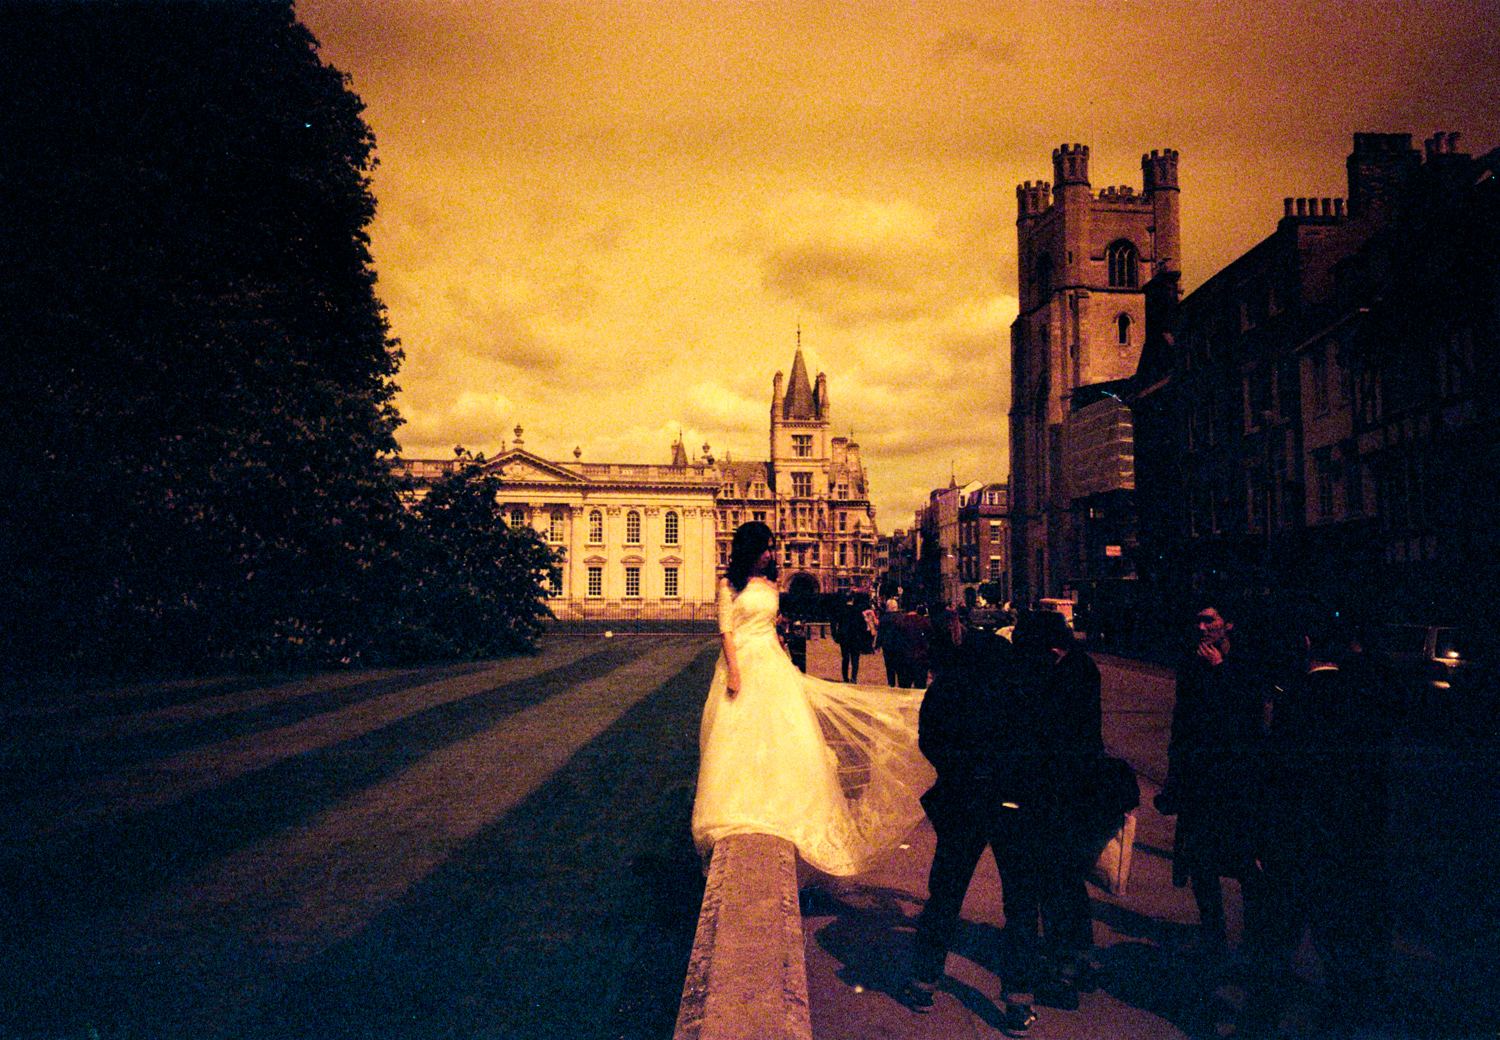 lomography-redscale-examples-9.jpg